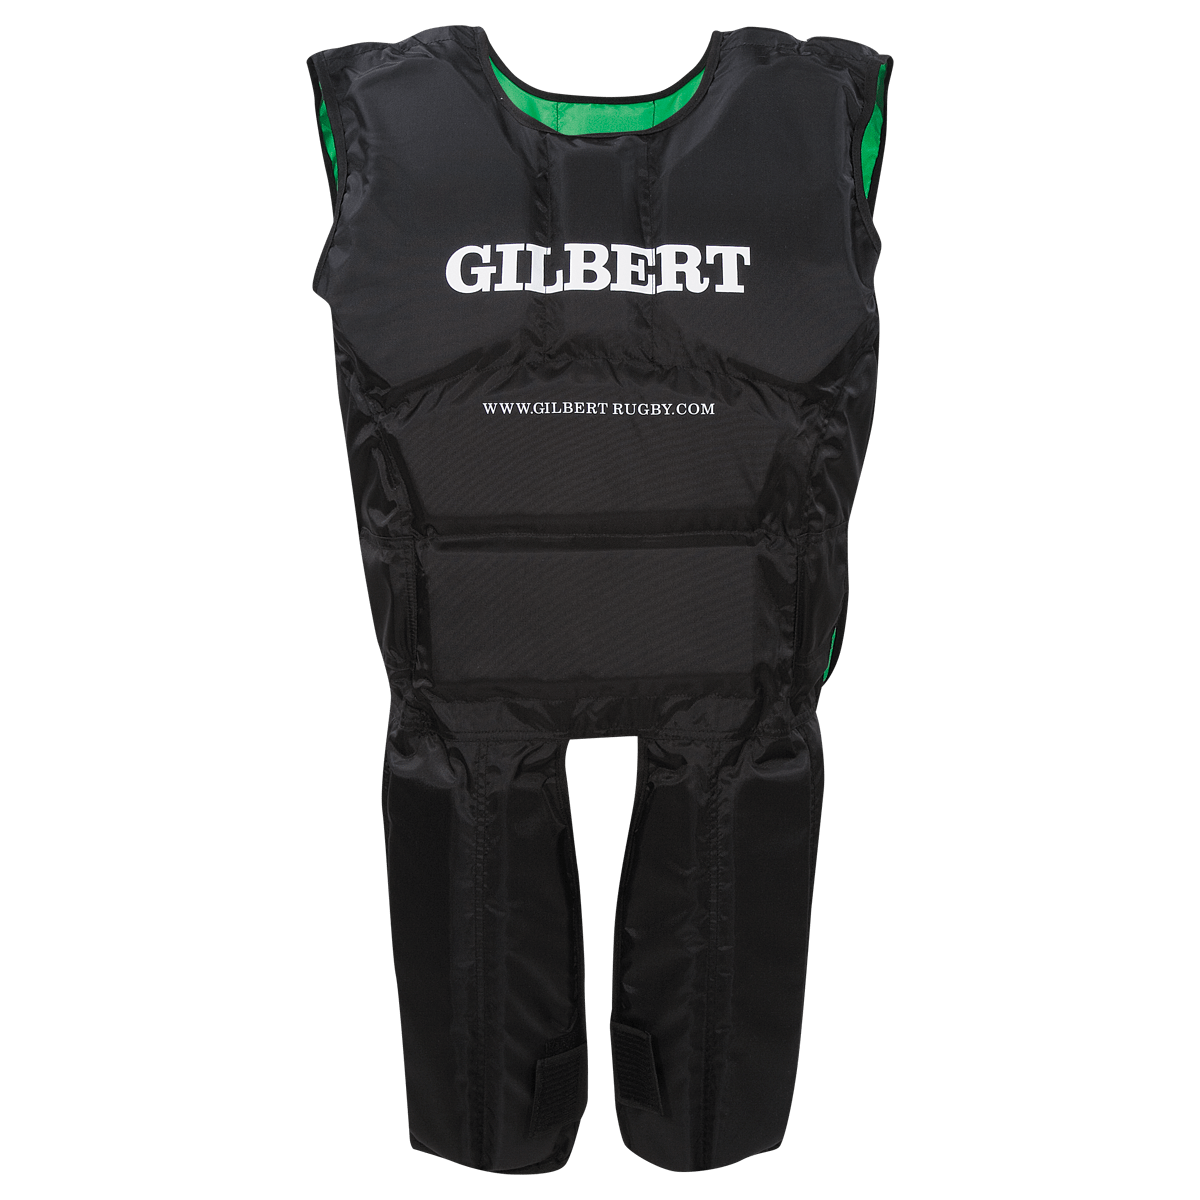 Gilbert Rugby Armour Suit Black with White Gilbert on Chest